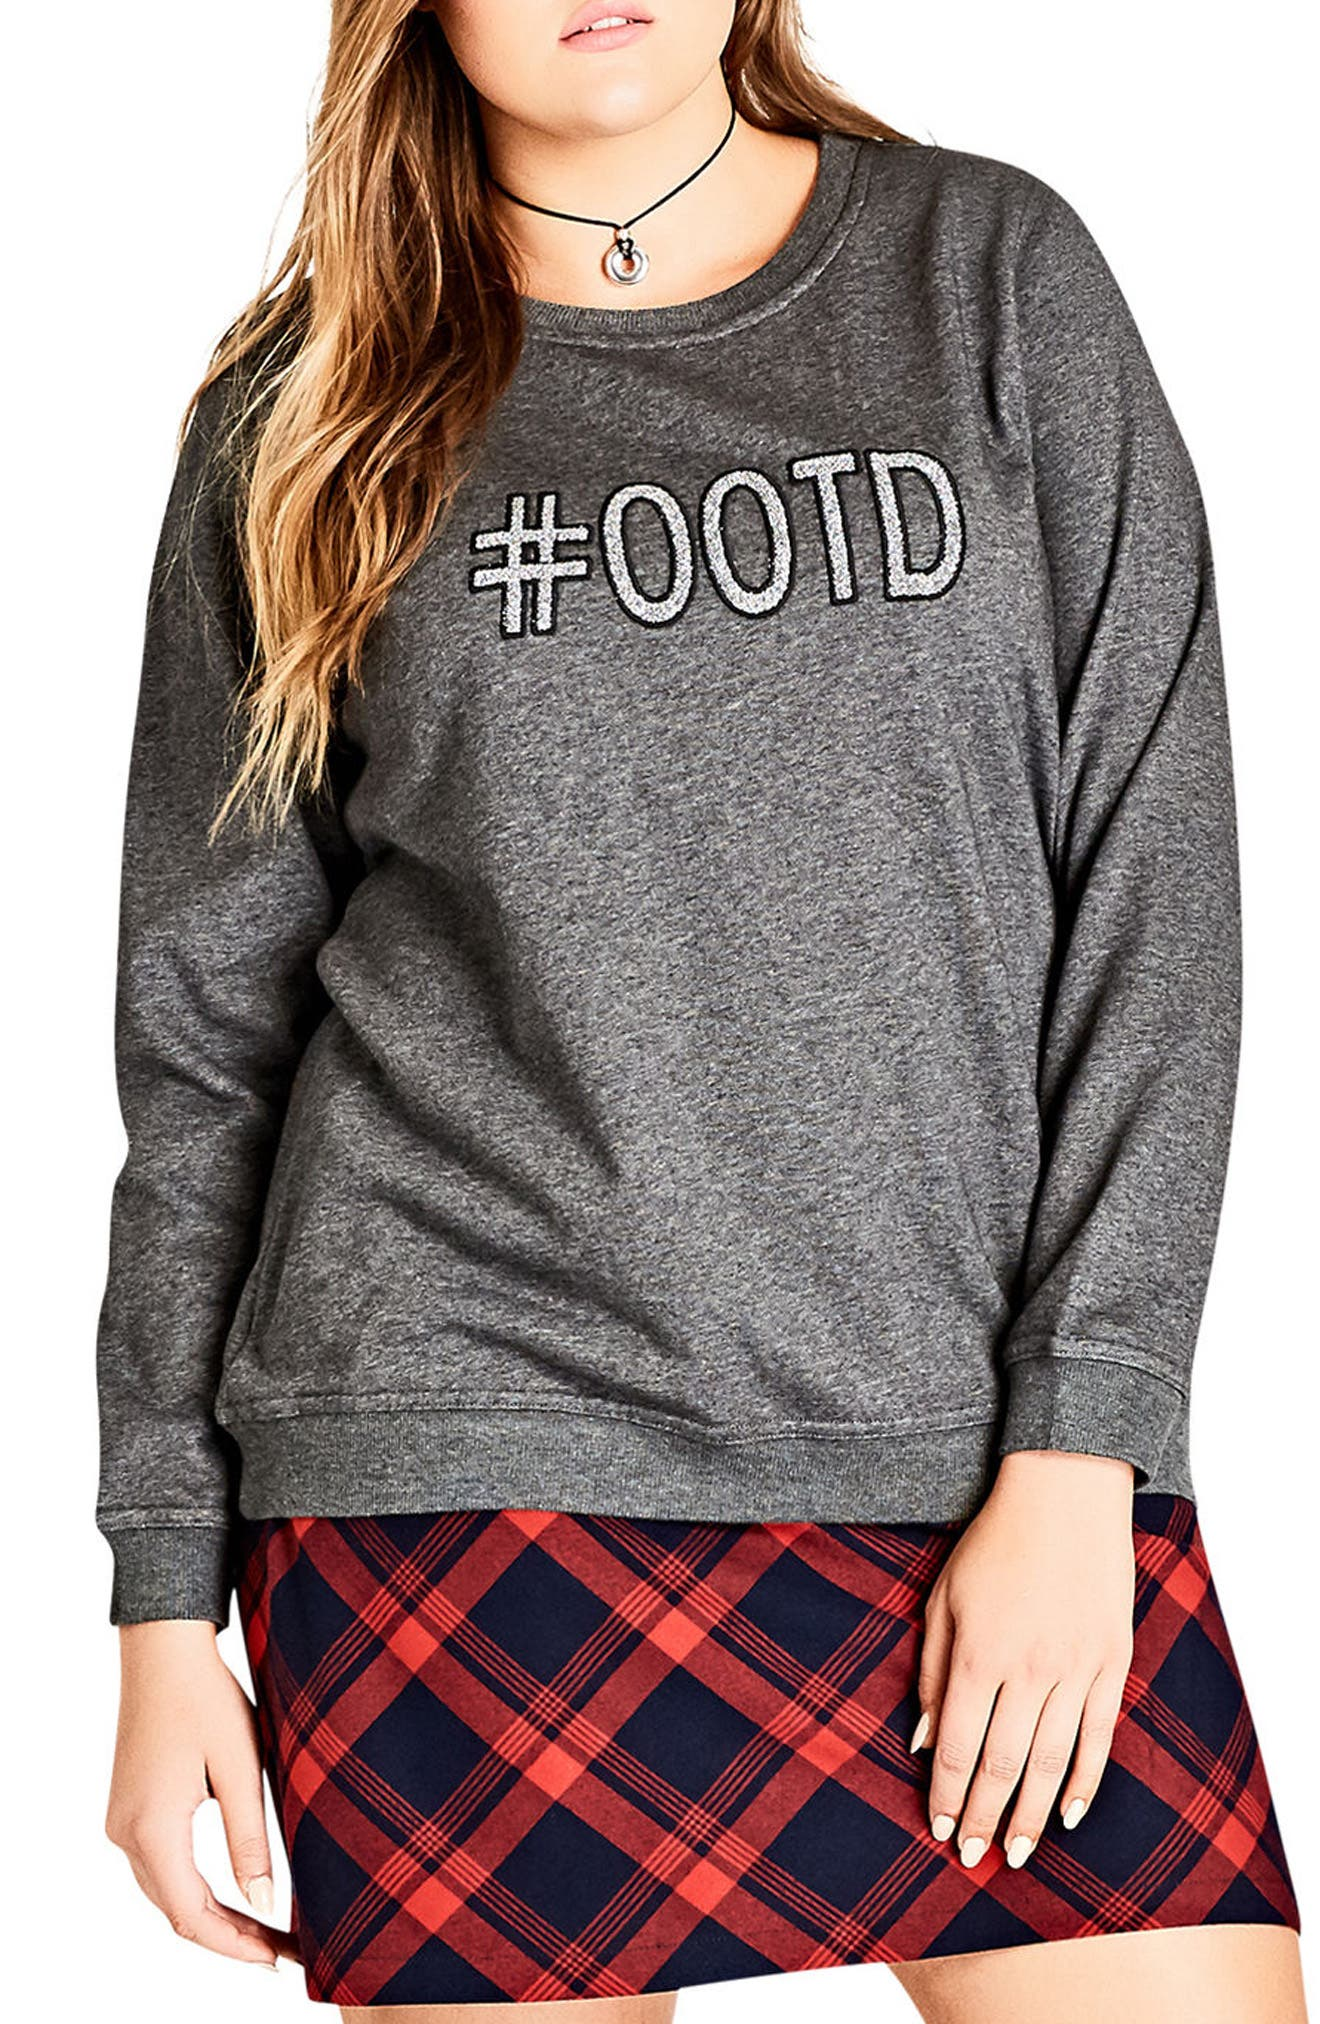 Alternate Image 1 Selected - City Chic #OOTD Sweatshirt (Plus Size)